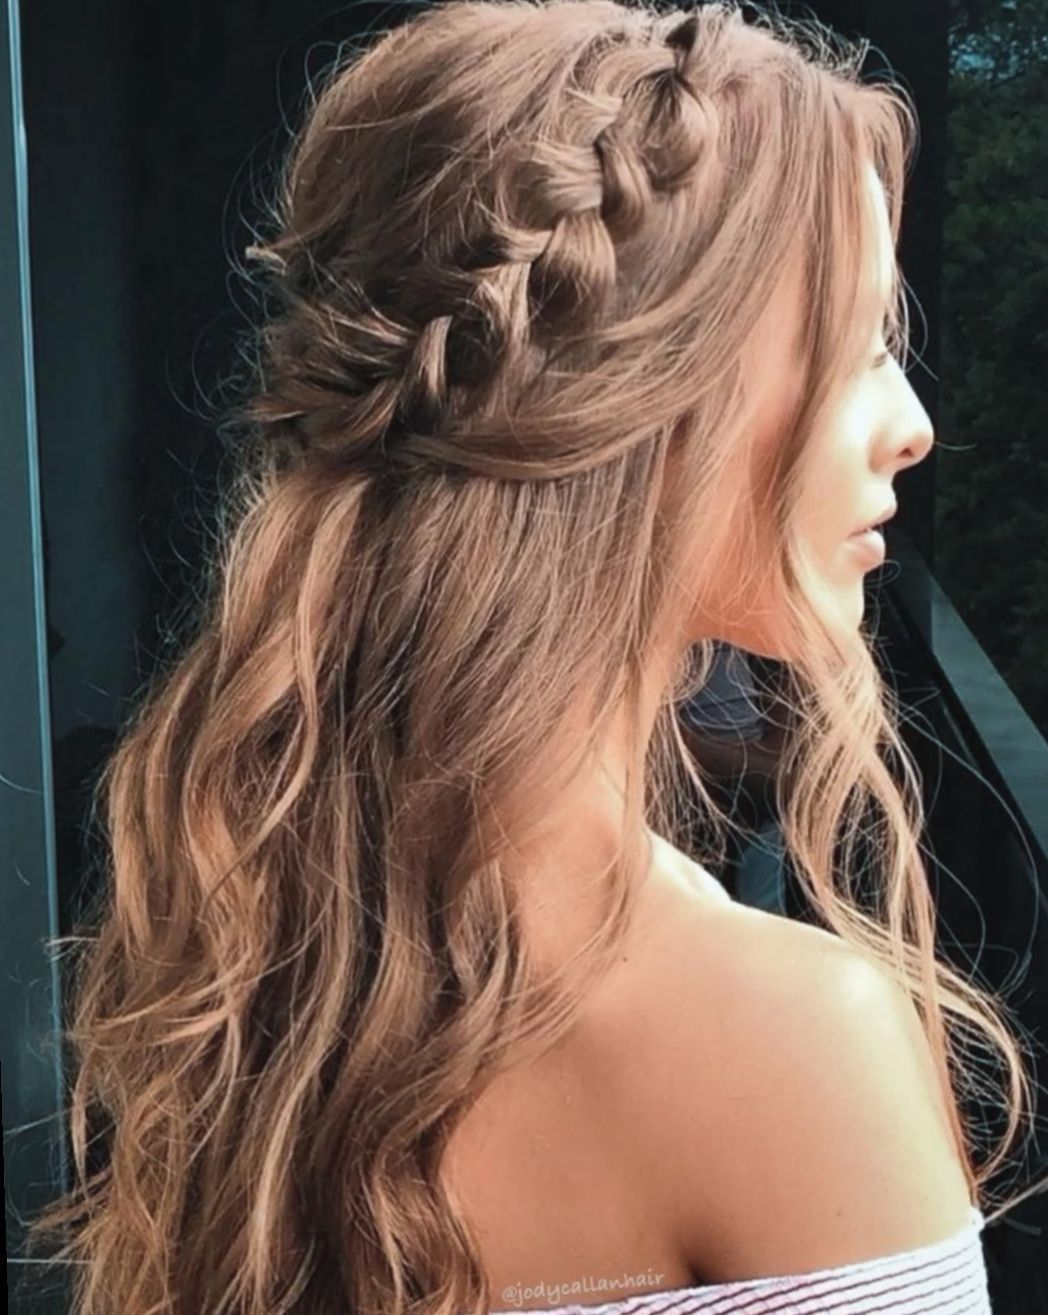 Hairstyle Ideas For Events Hairstyle Ideas To Do At Home Hairstyle Bangs Ideas 5 Hairstyle Ide In 2020 Medium Length Hair Styles Medium Hair Styles Grad Hairstyles